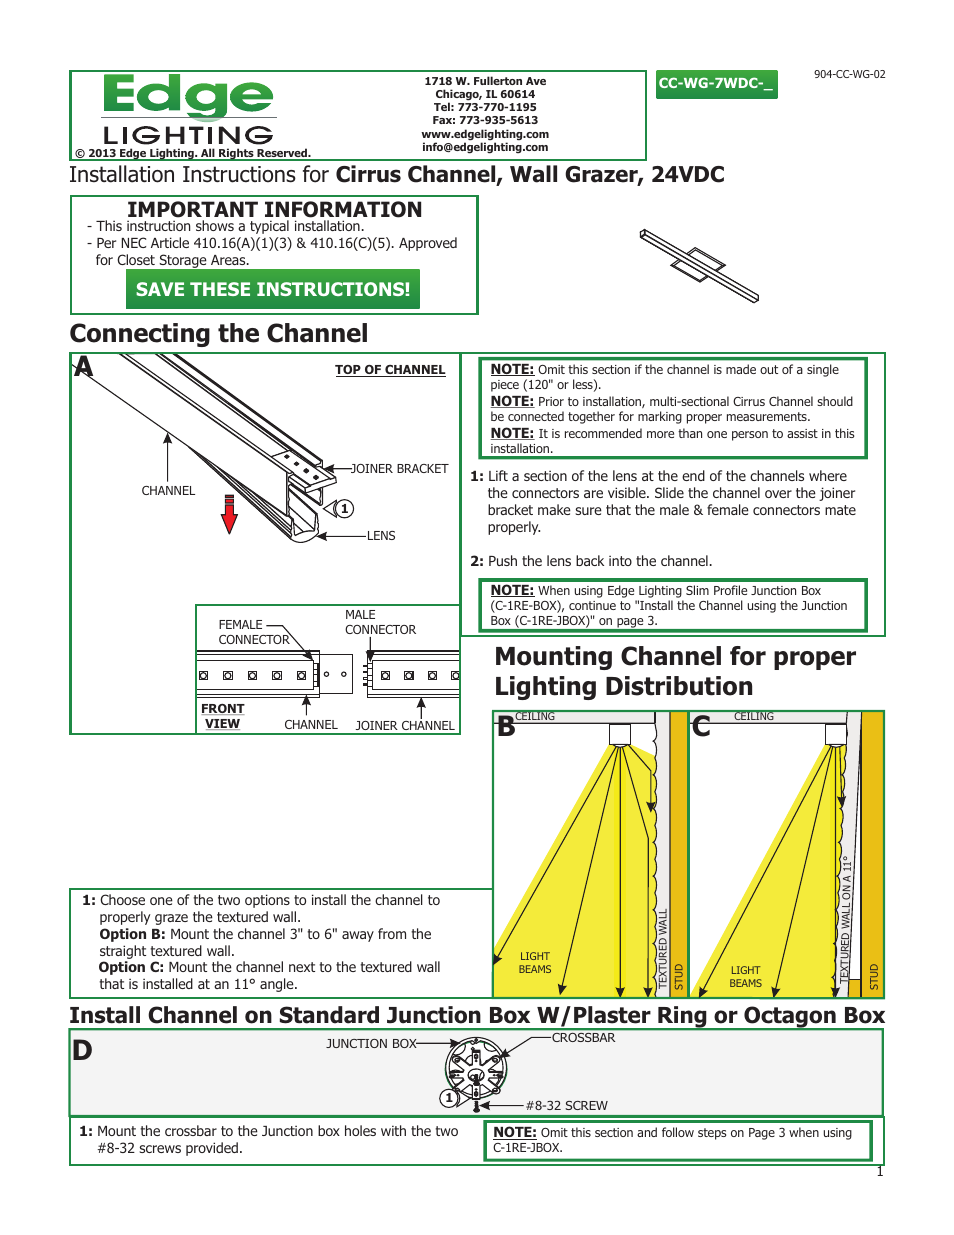 Edge Lighting Cirrus Channel, Wall Grazer User Manual | 5 pages